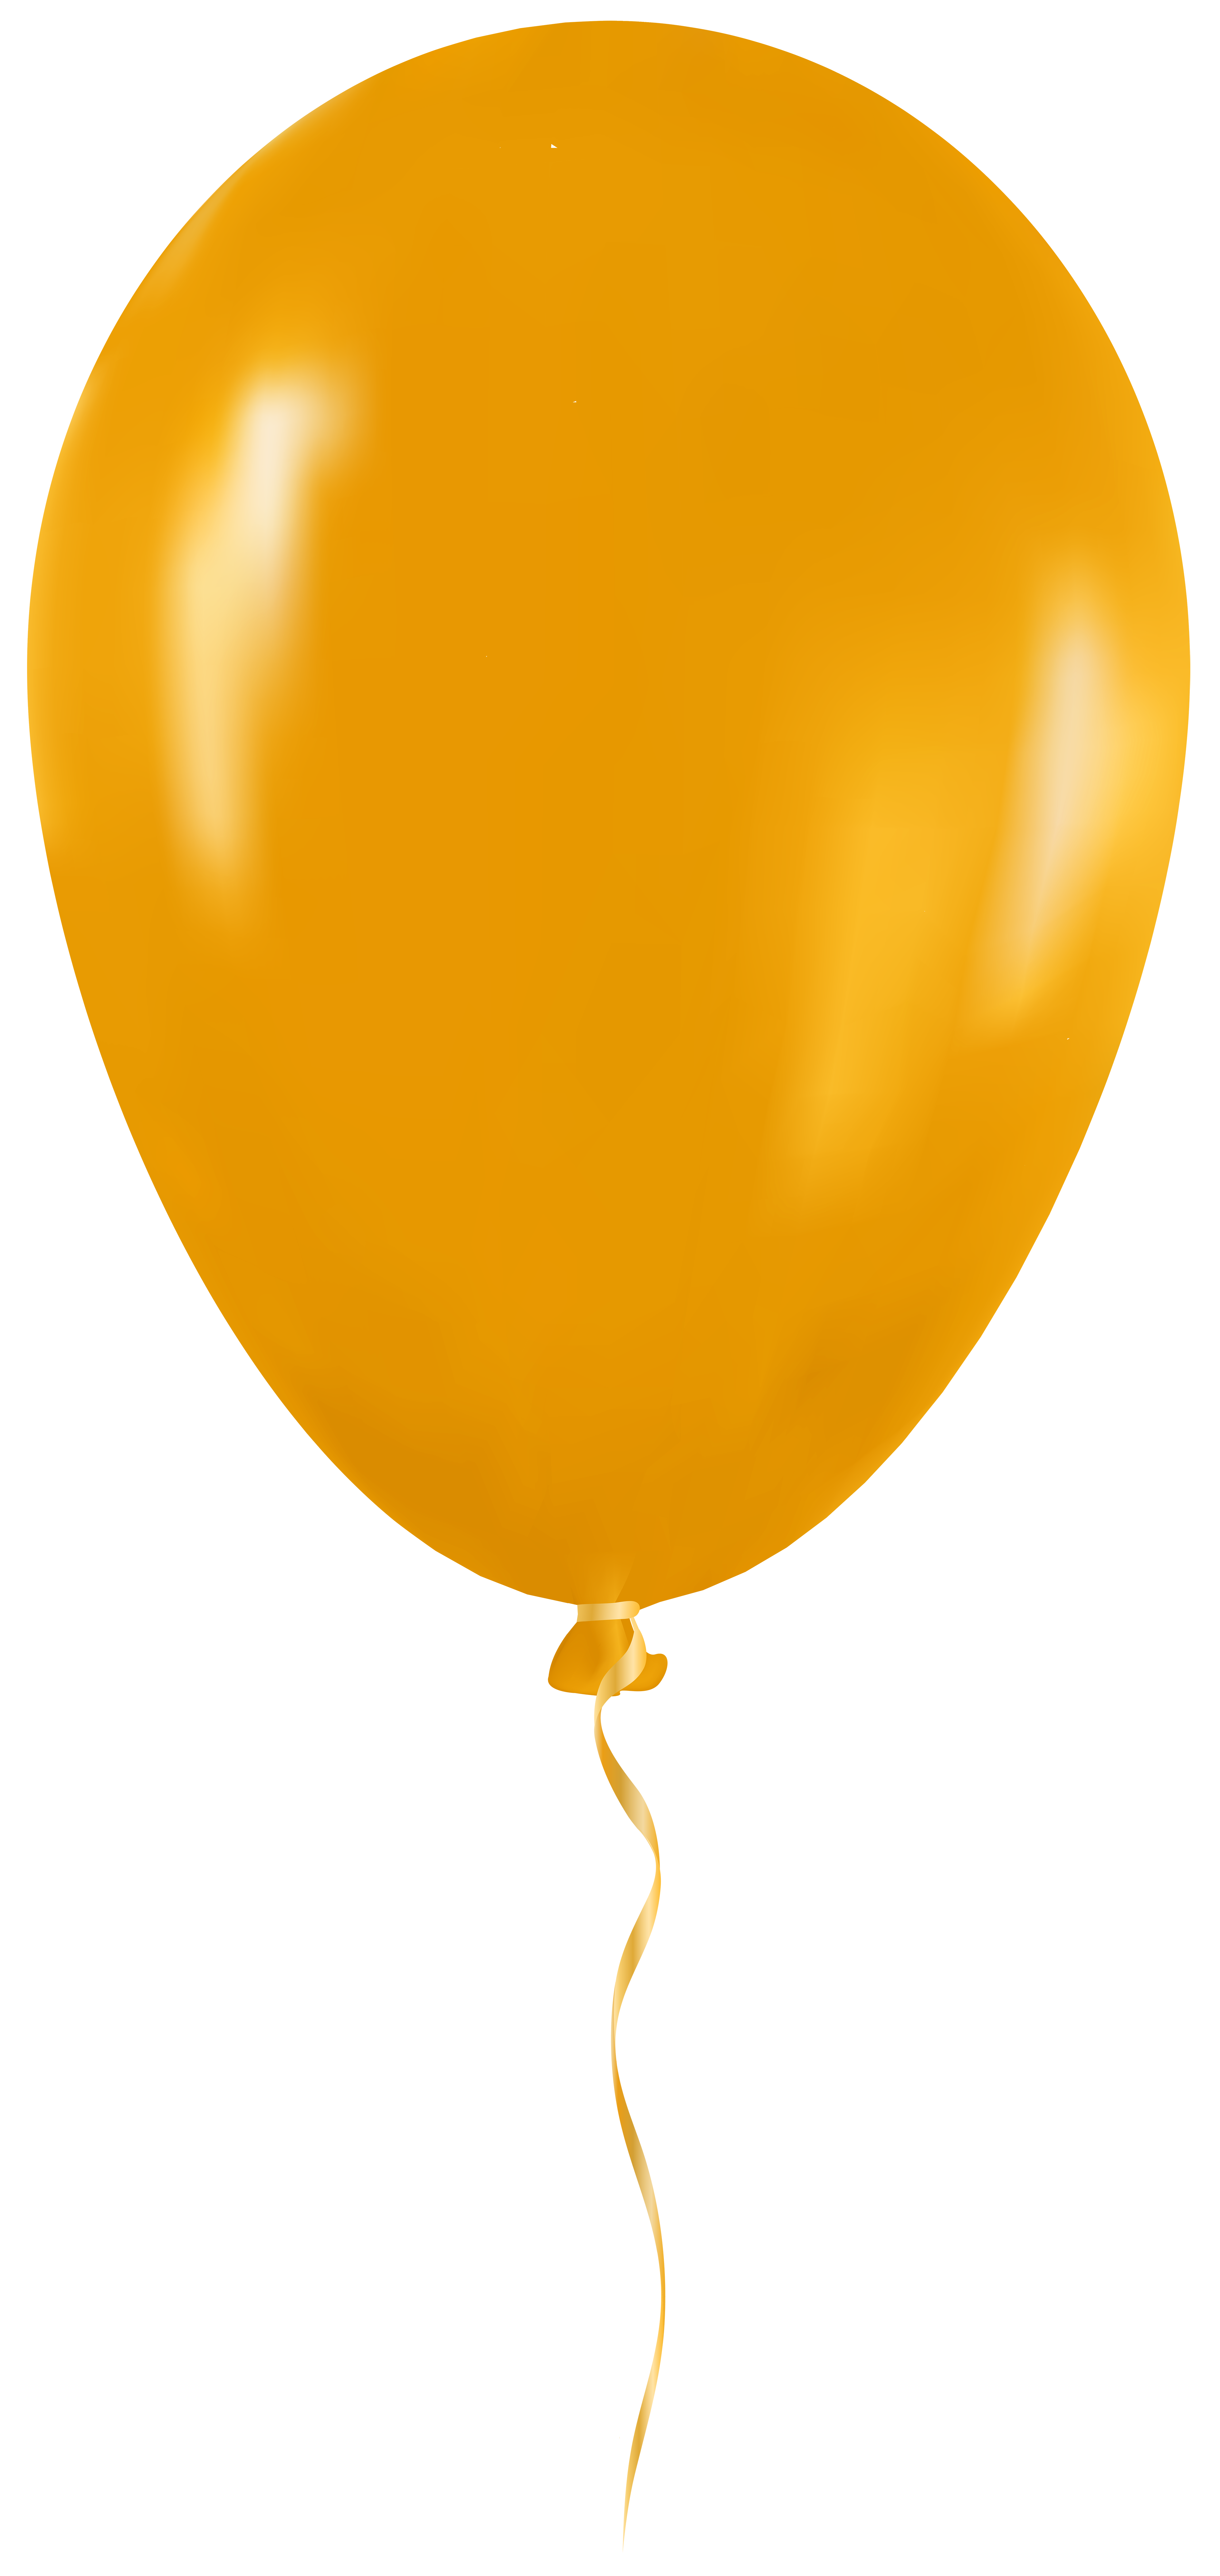 3788x8000 Ballon Drawing Balloon Transparent Png Clipart Free Download